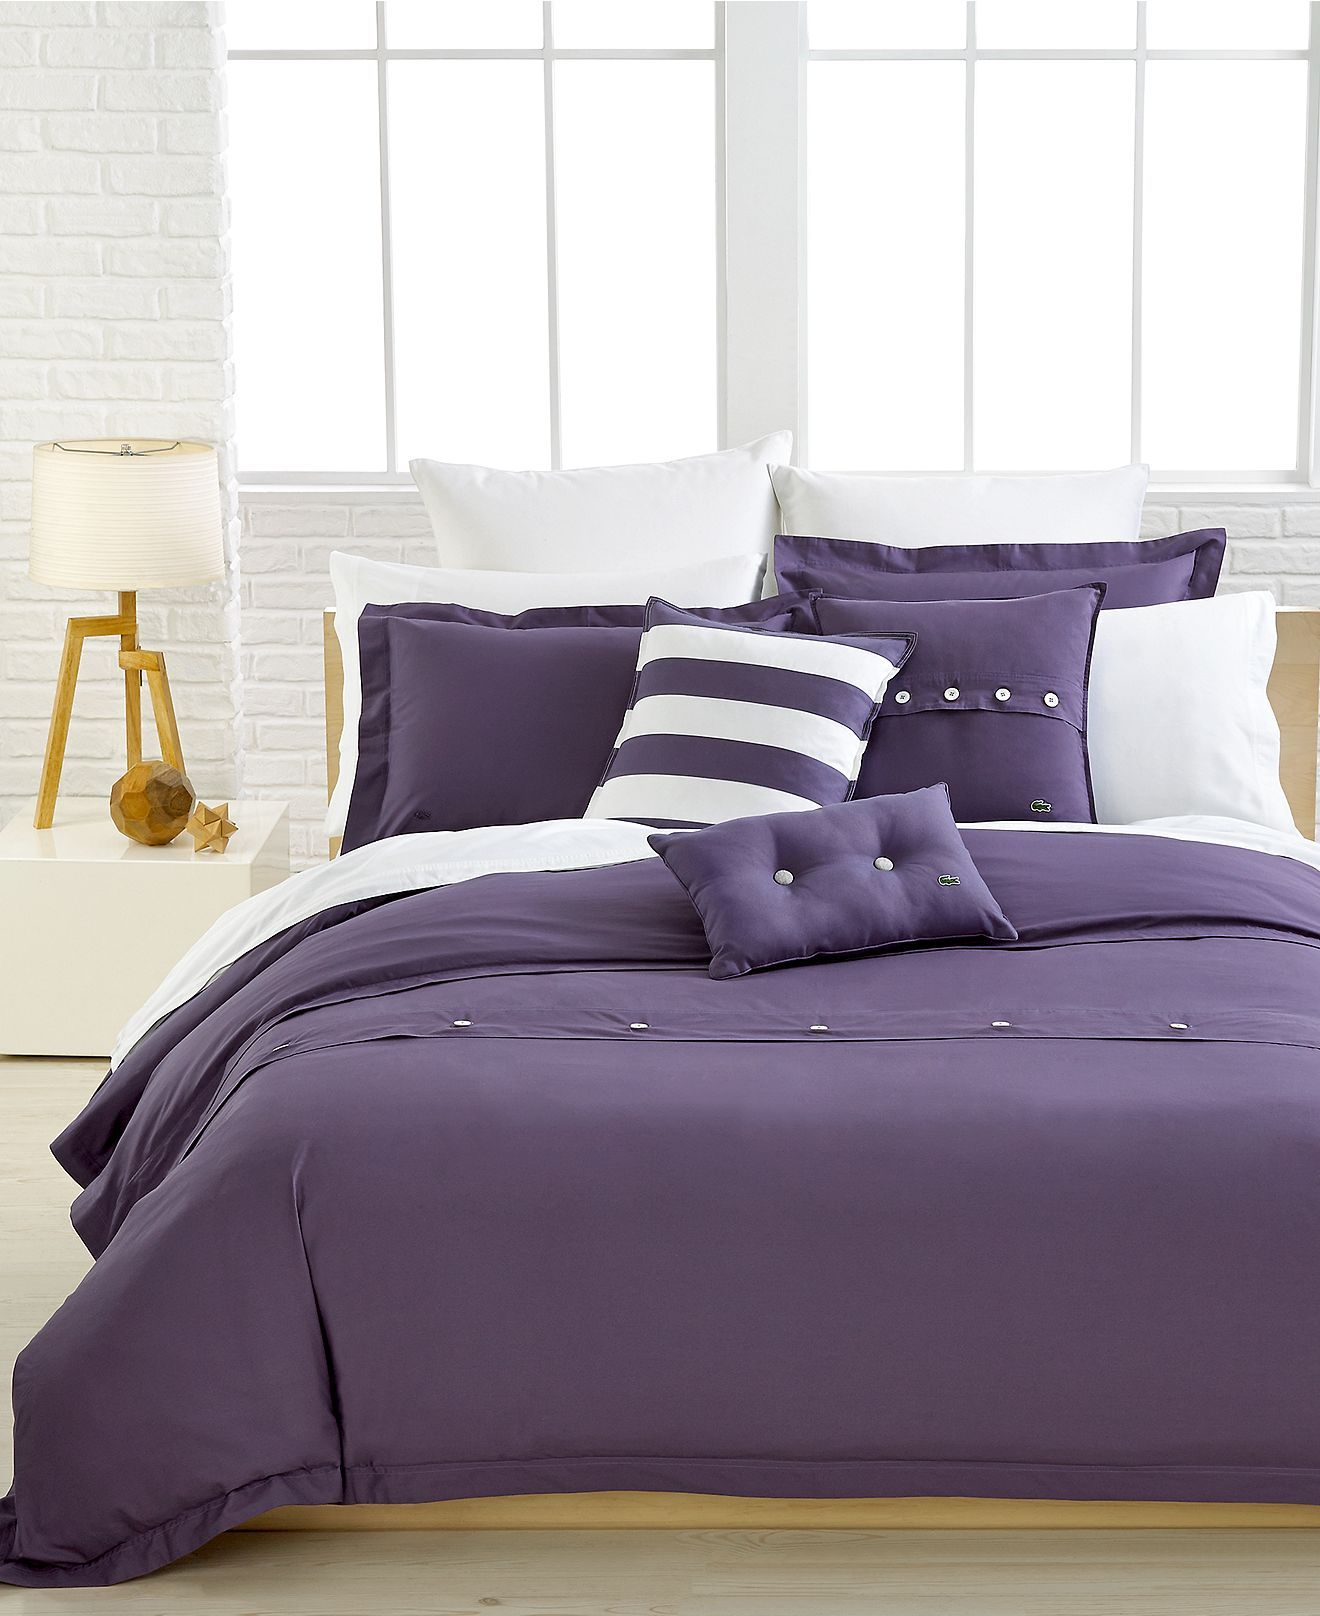 Lacoste Bedding, Solid Purple Brushed Twill Comforter and